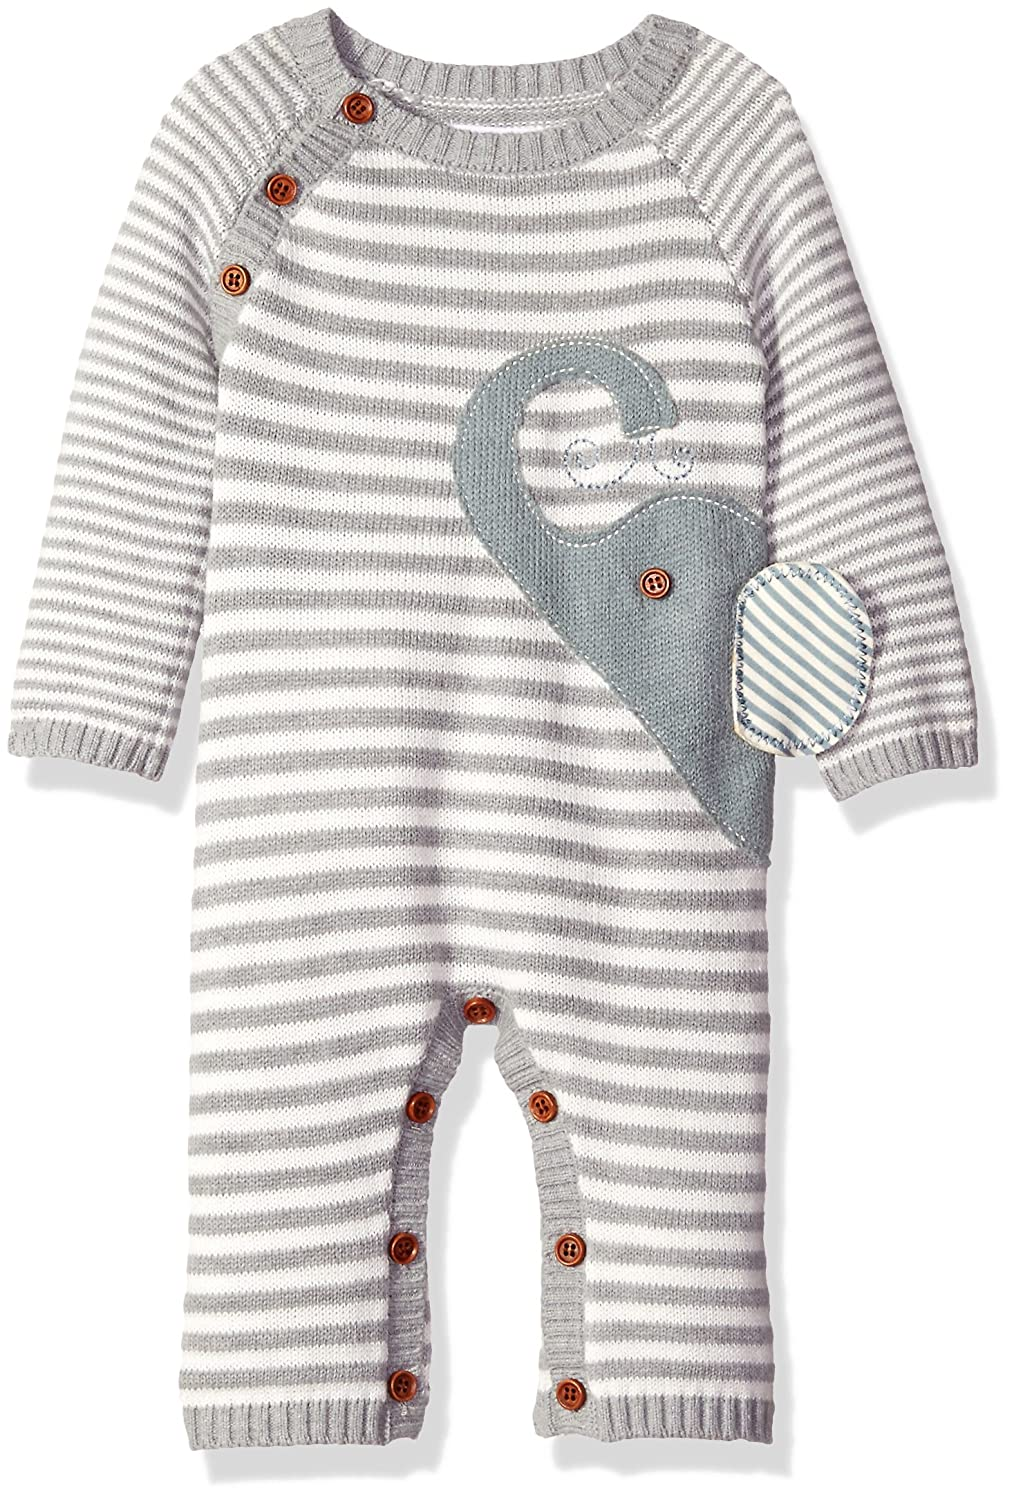 Mud Pie Unisex-Baby Baby ' Elephant Striped Sweater One Piece Playwear Gray 0-3 Months 1032283-03